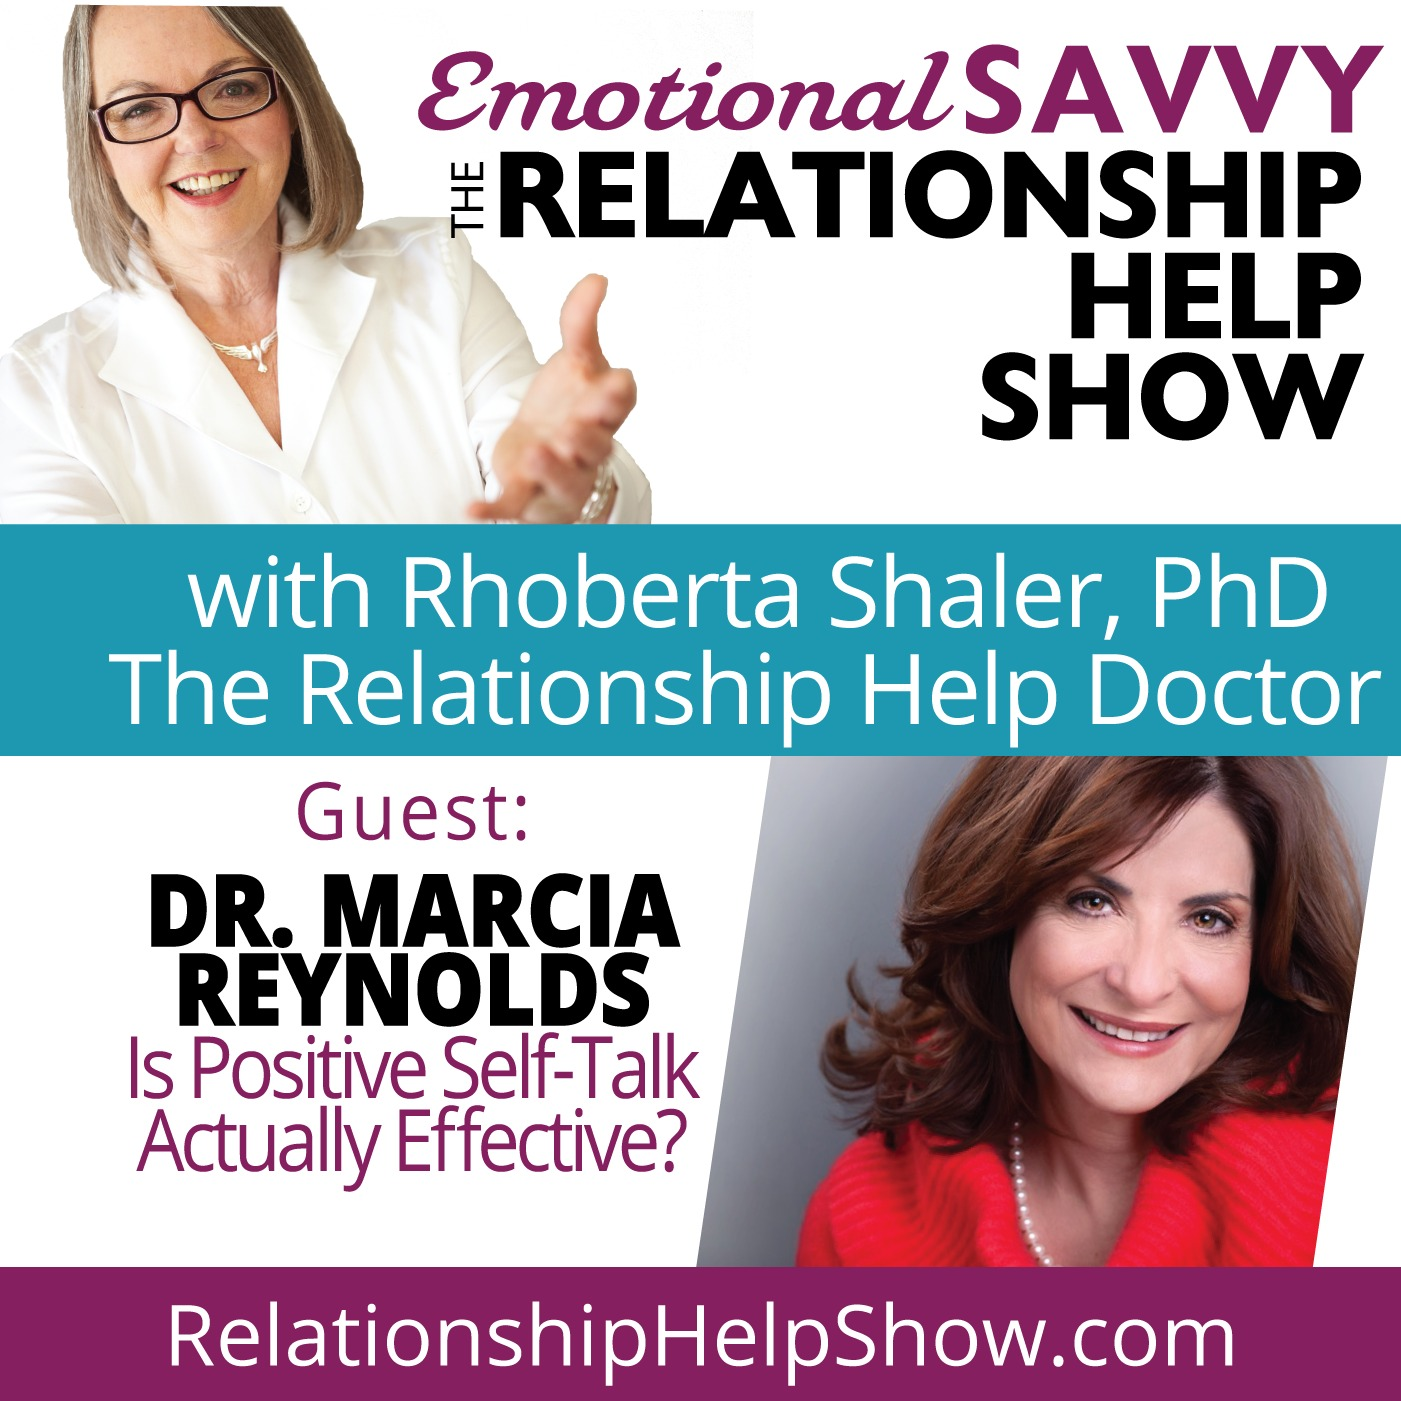 Is Positive Self-Talk Actually Effective? Brain Stuff!  GUEST: Dr. Marcia Reynolds